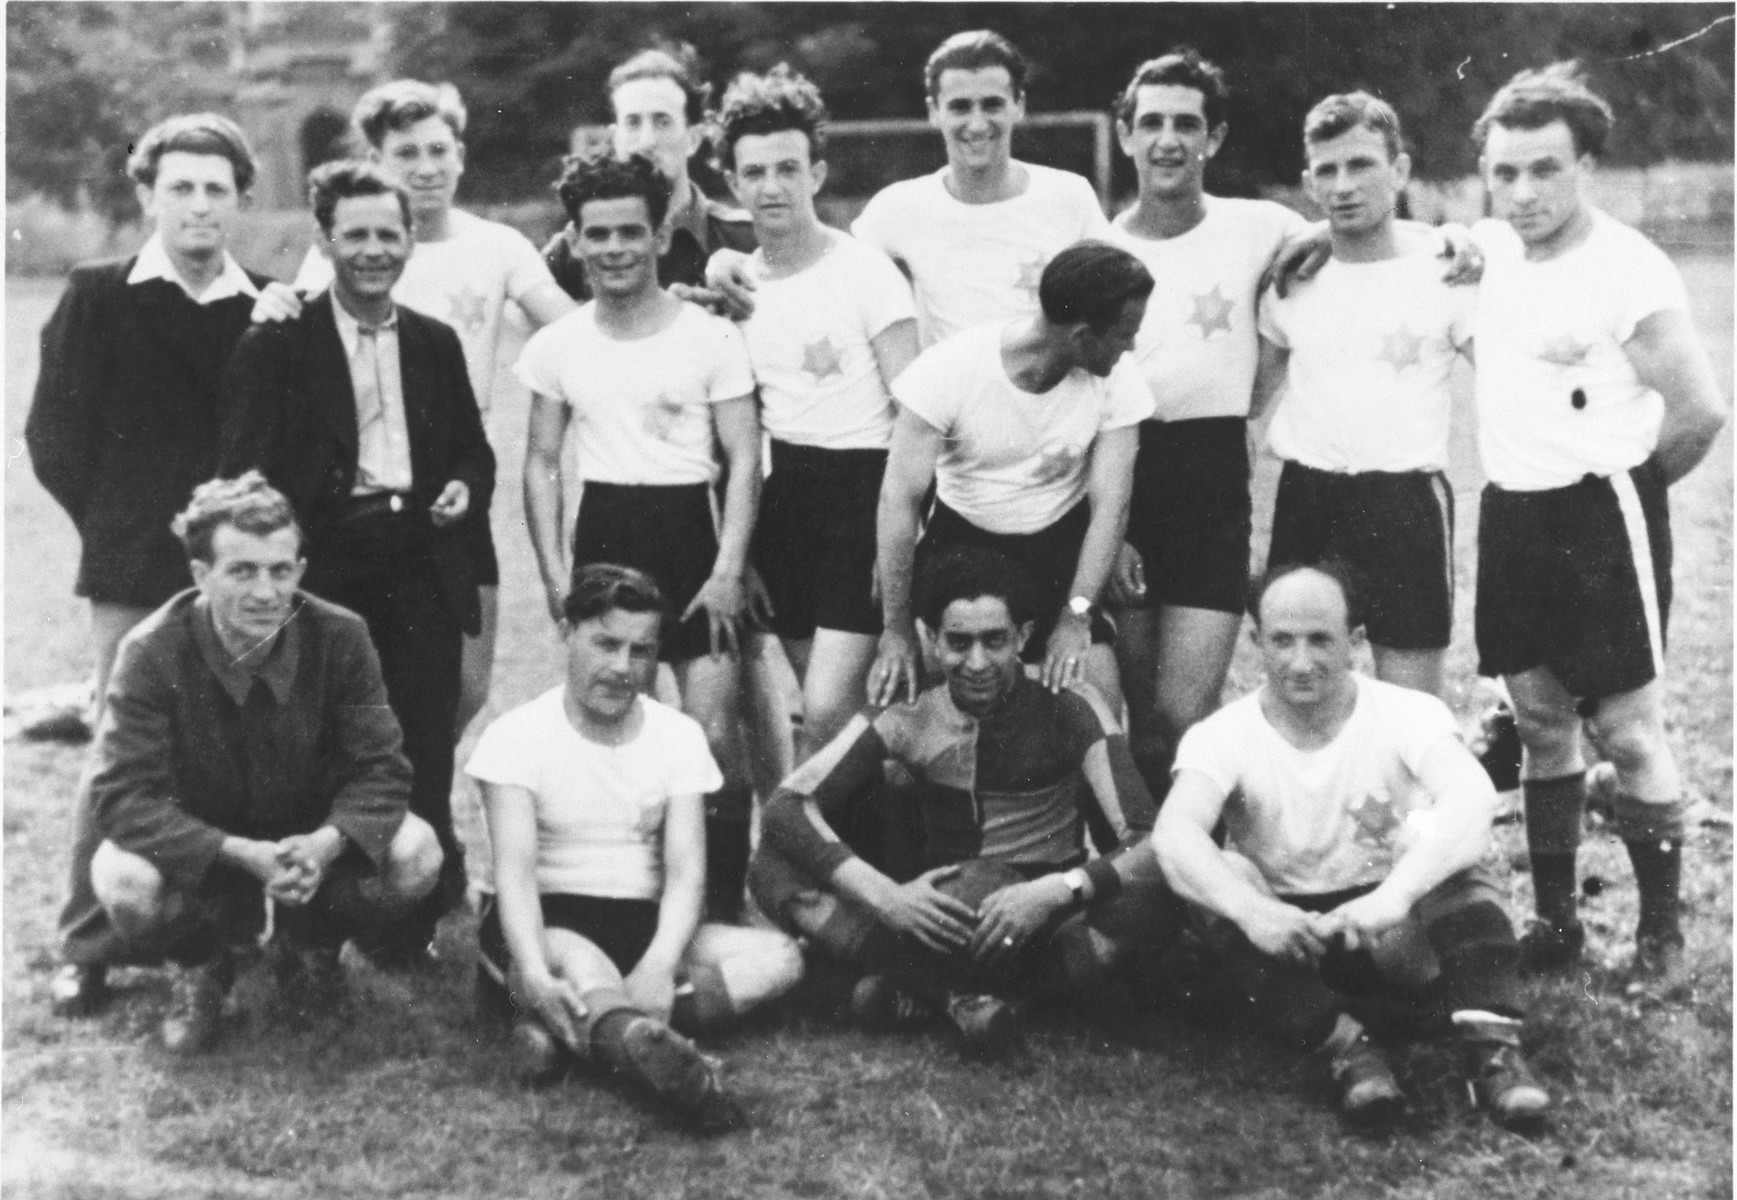 Auschwitz survivors, originally from Sighet, gather for a soccer game in a German DP camp.  Those pictured include Alex Kahn, back row, fourth from the right.